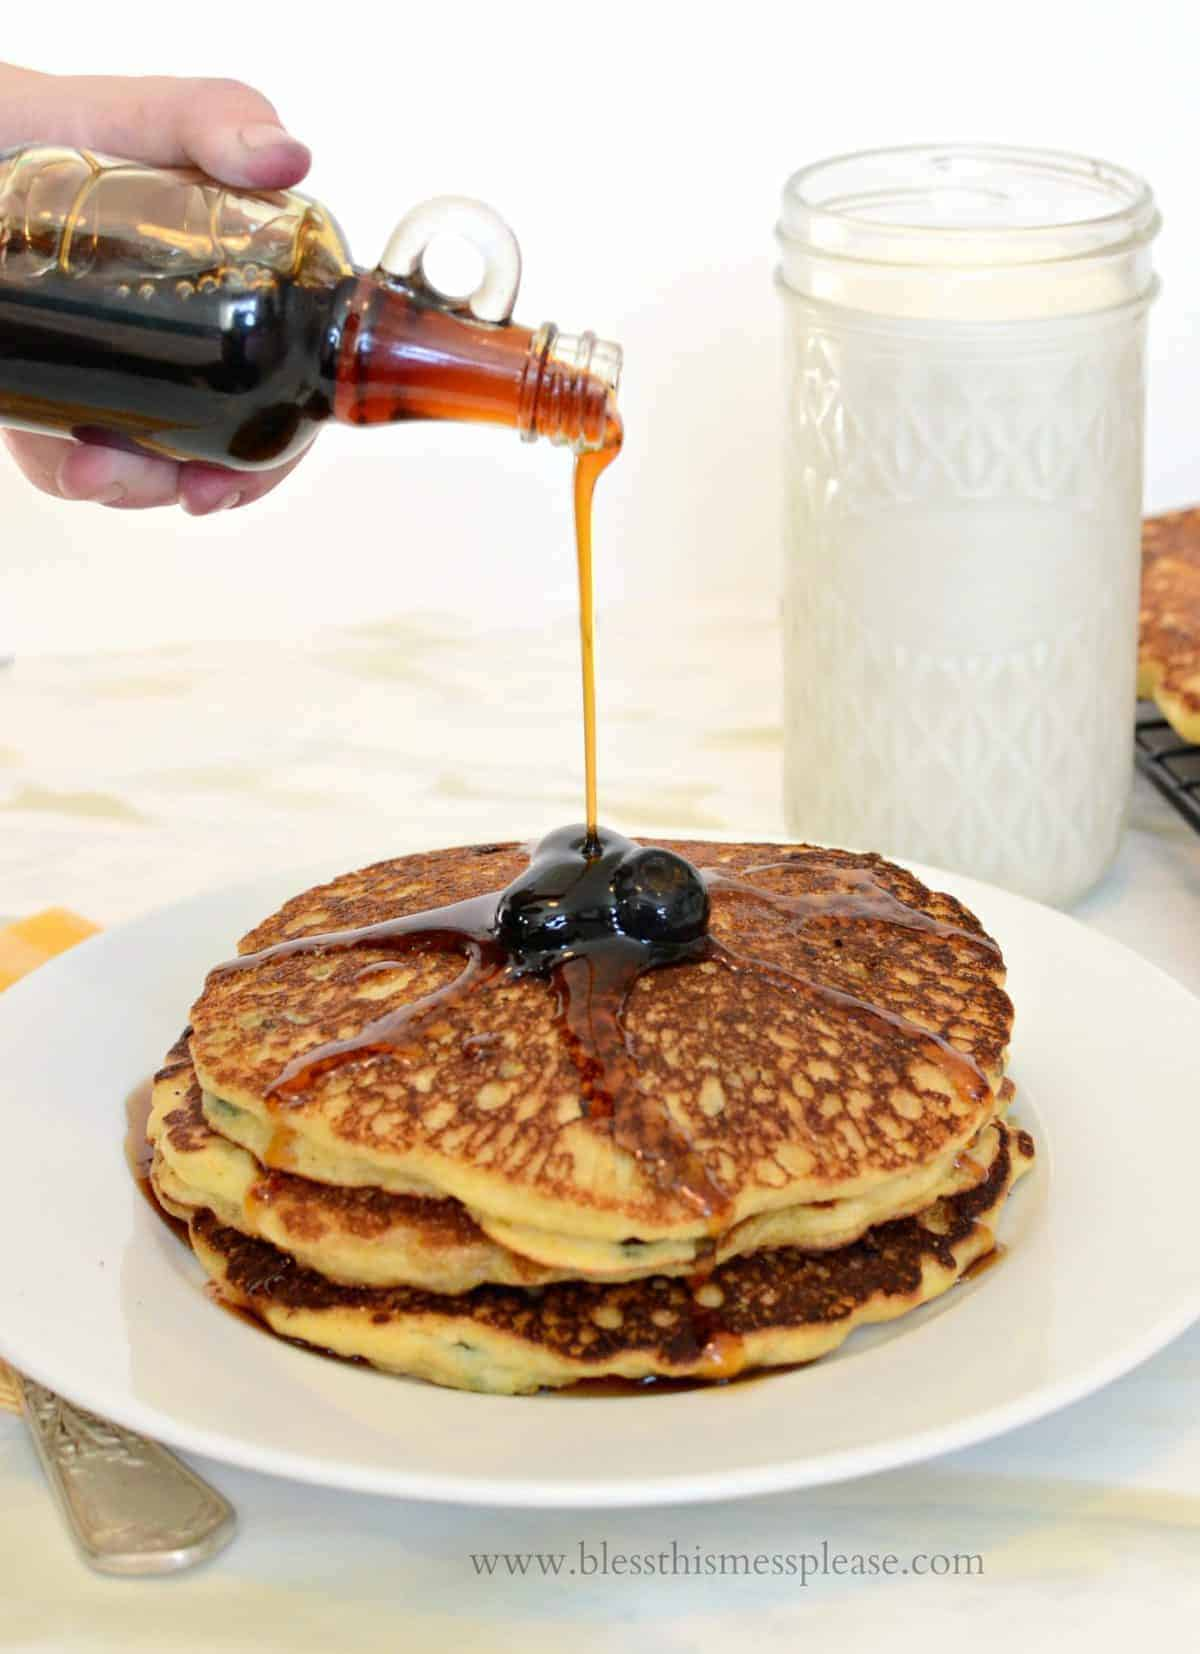 Image of Blueberry Cornmeal Pancakes with Maple Syrup